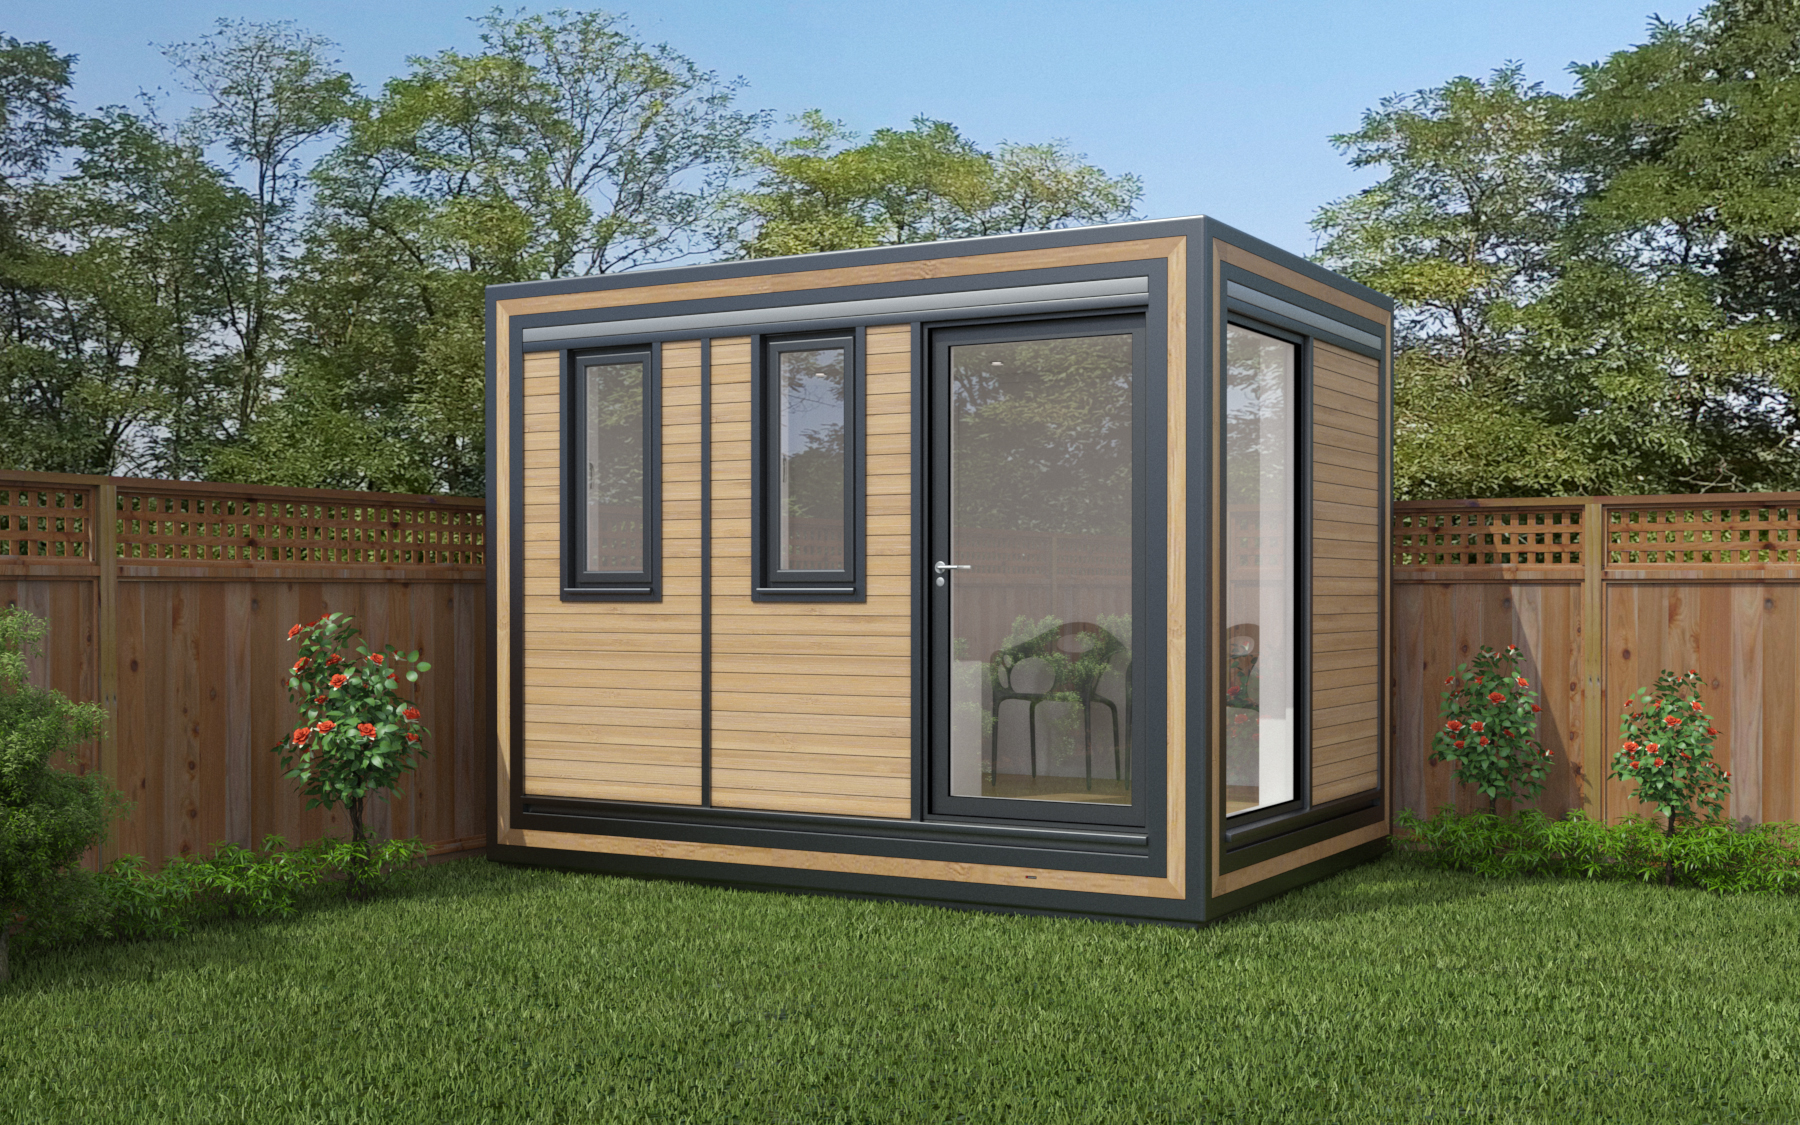 ZEDBOX 320  (3 x 2)  Internal Size: 3188 x 2117  External Size: 3658 x 2117  Bed Options: Single  Kitchen Options: N/A  Wet Room Options: Yes  Portico: No  Price:  £16,000    Optional Extras    Request Zedbox Catalogue